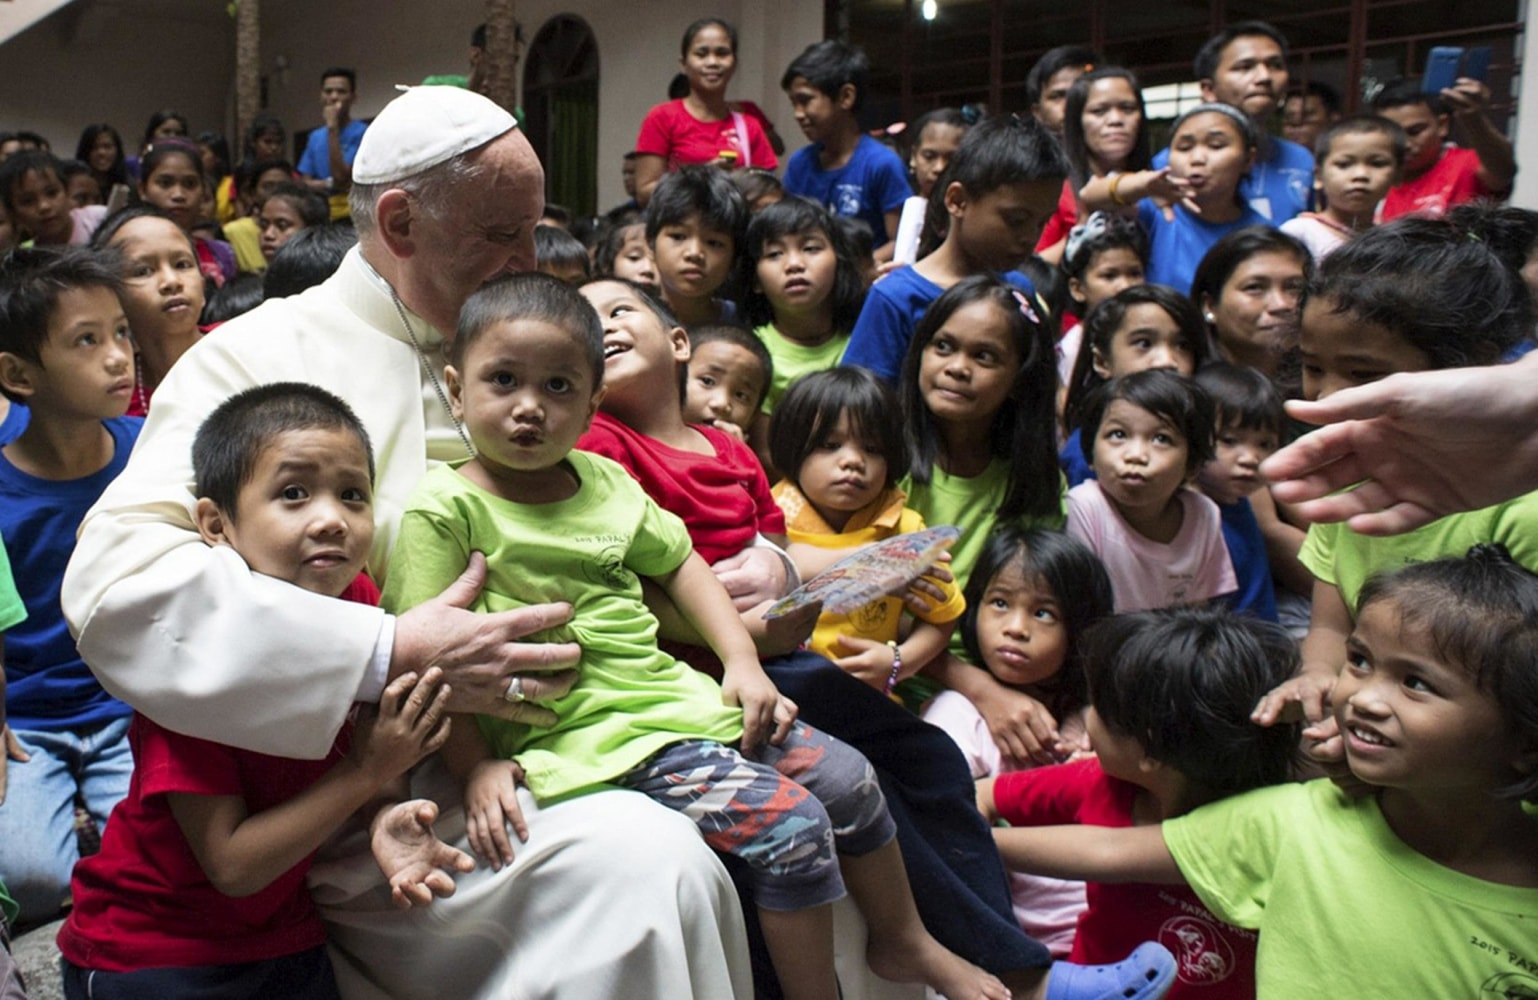 filipinos reaction towards papal visits About 25 million filipinos, or one quarter of the population, live on the equivalent of 60 cents a day or less, according to the latest official poverty surveys the.